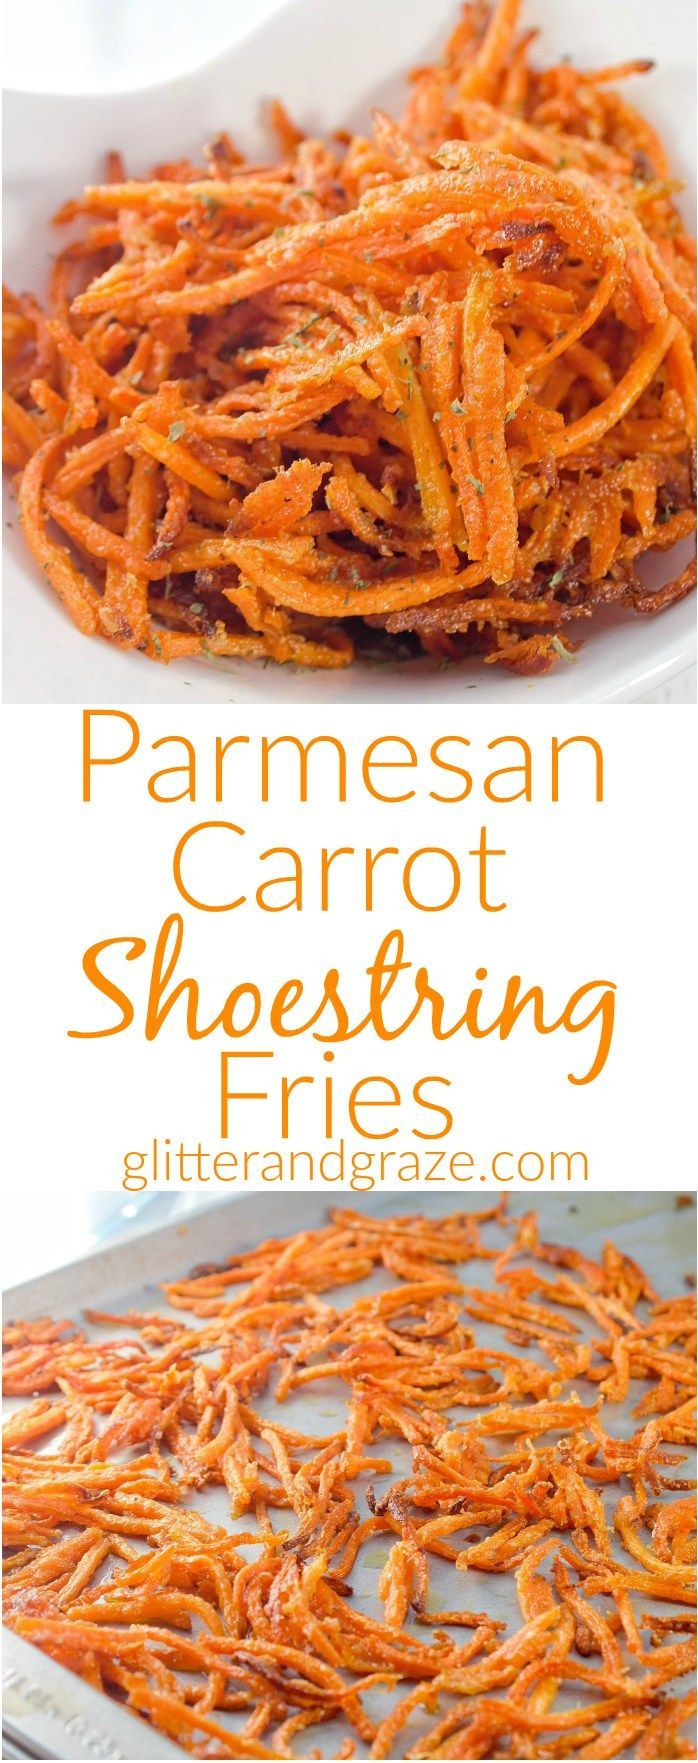 These Parmesan carrot shoestring fires are a crunchy, cheesy healthy alternative snack